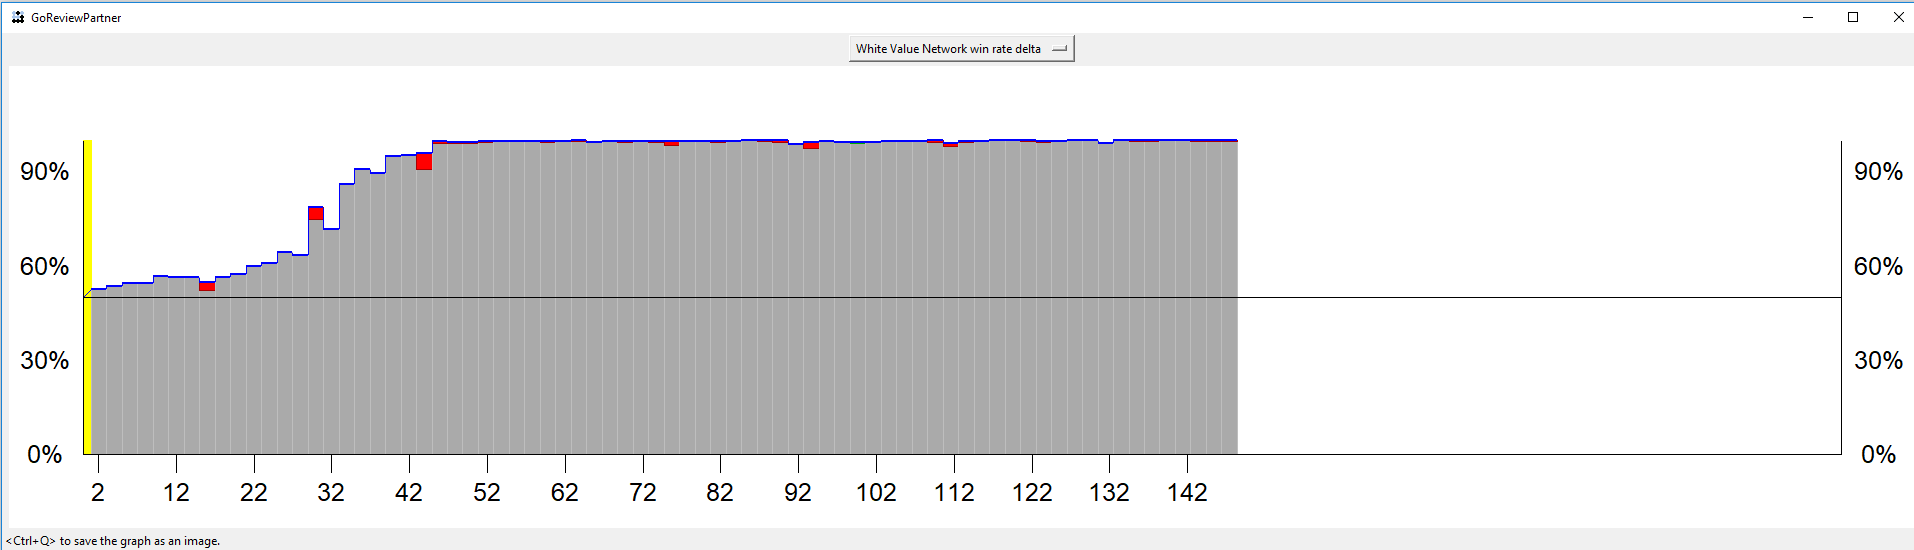 WhiteWinrate.png